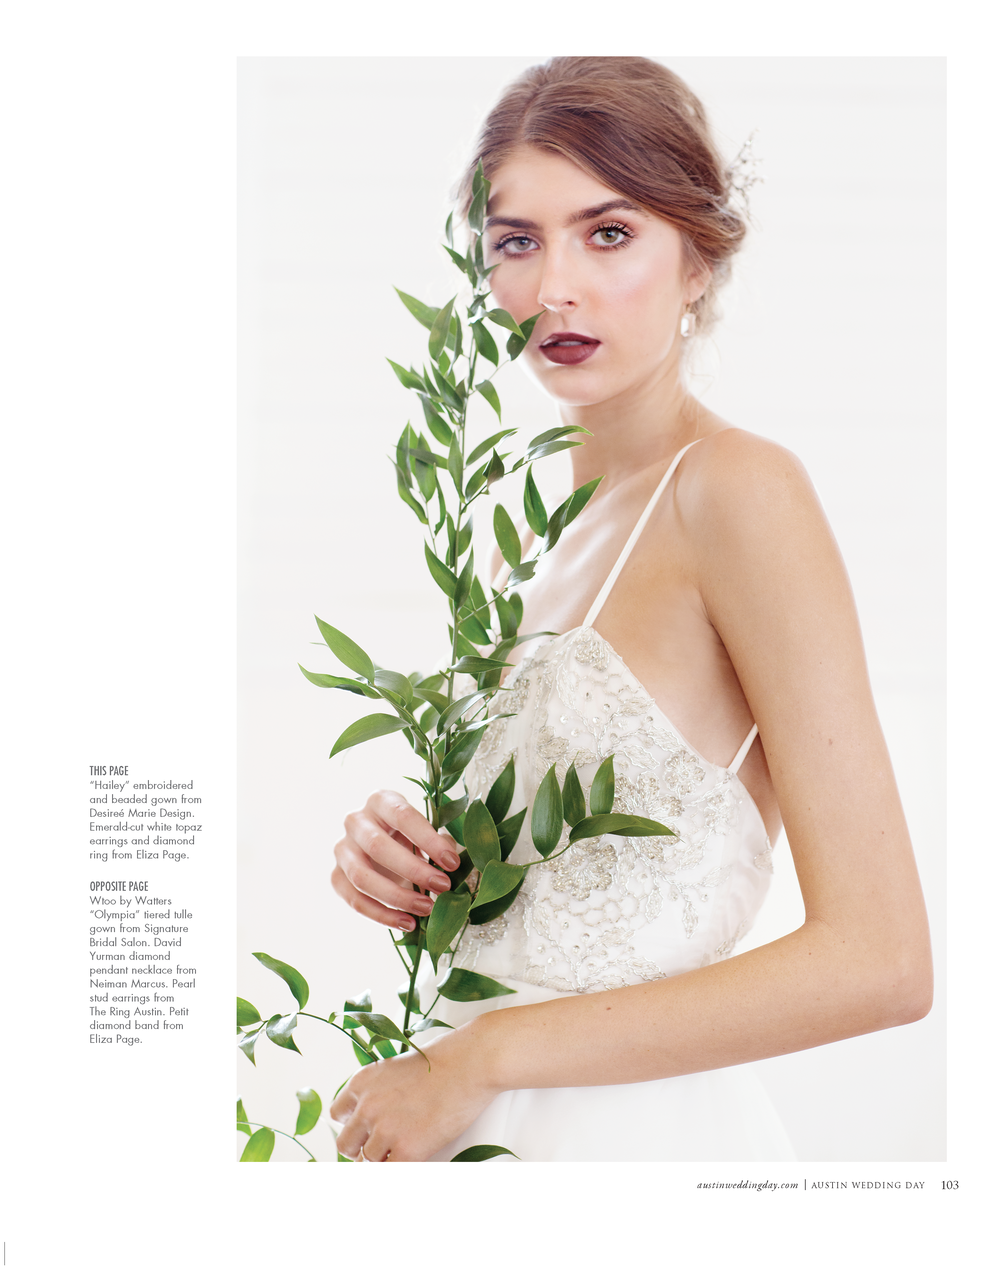 Published in Austin Wedding Day Magazine Jan-Feb 2019 Featuring my Kayla dress